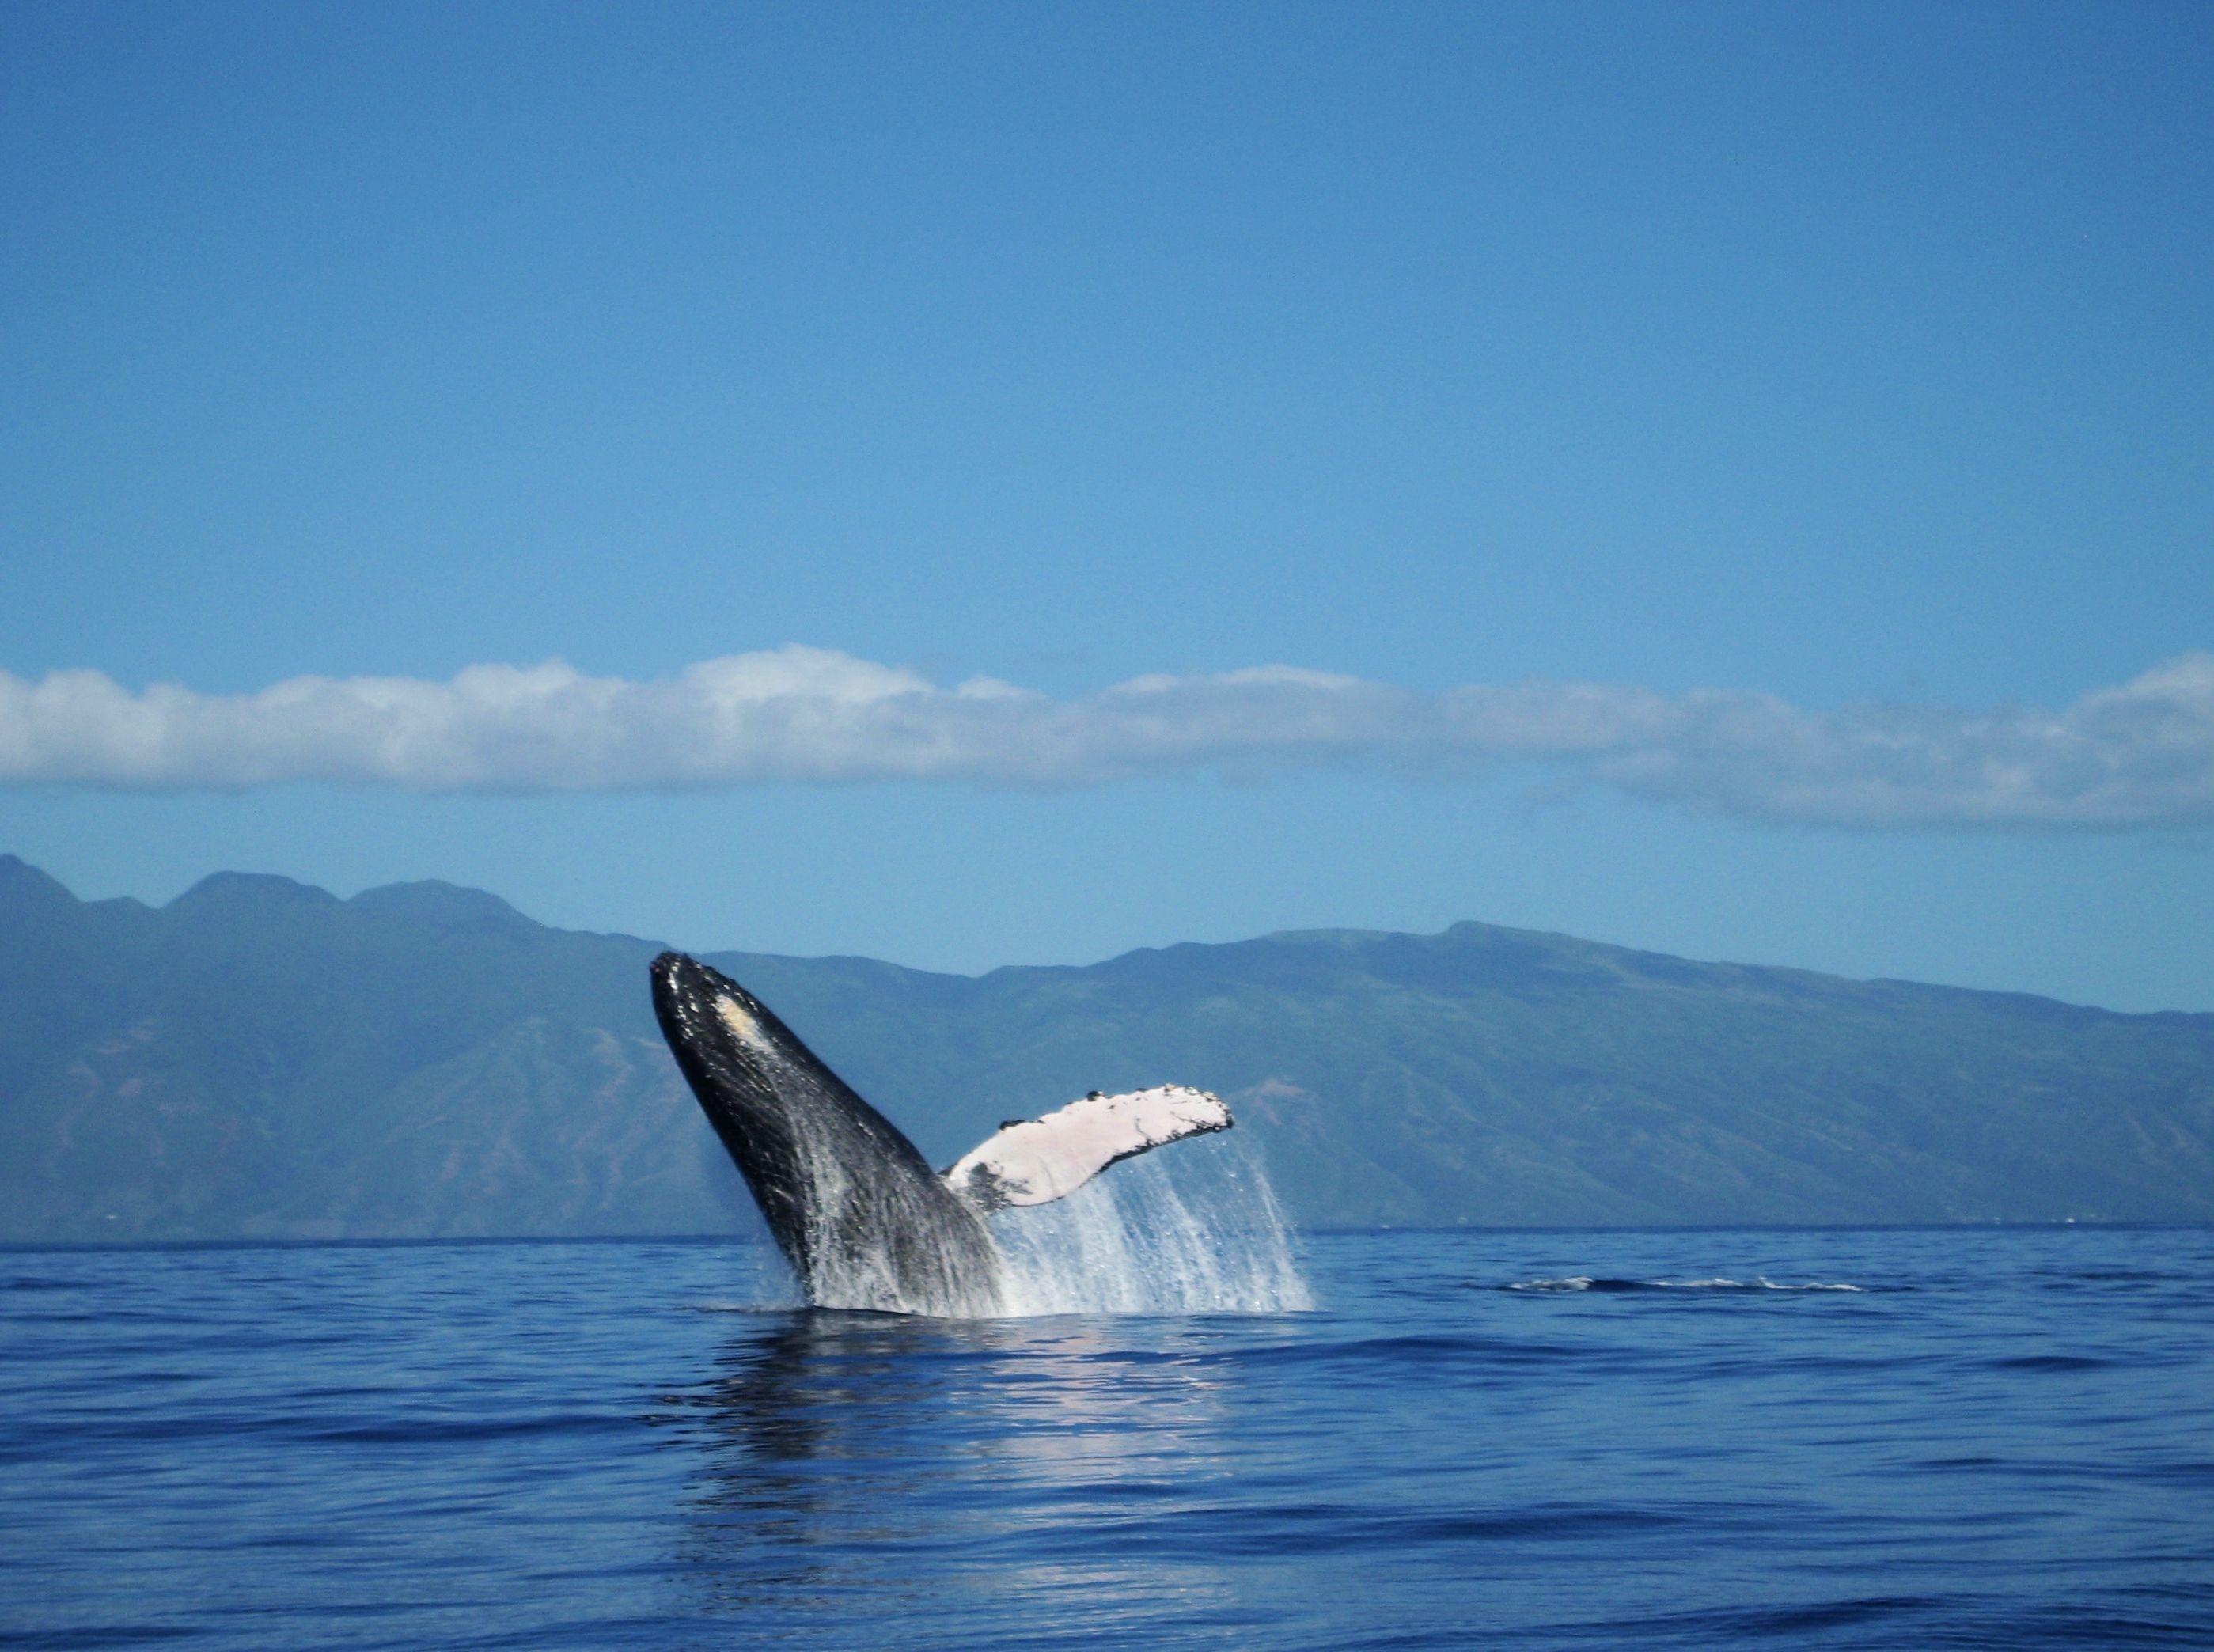 Breaching Humpback Whale Photo By Mona